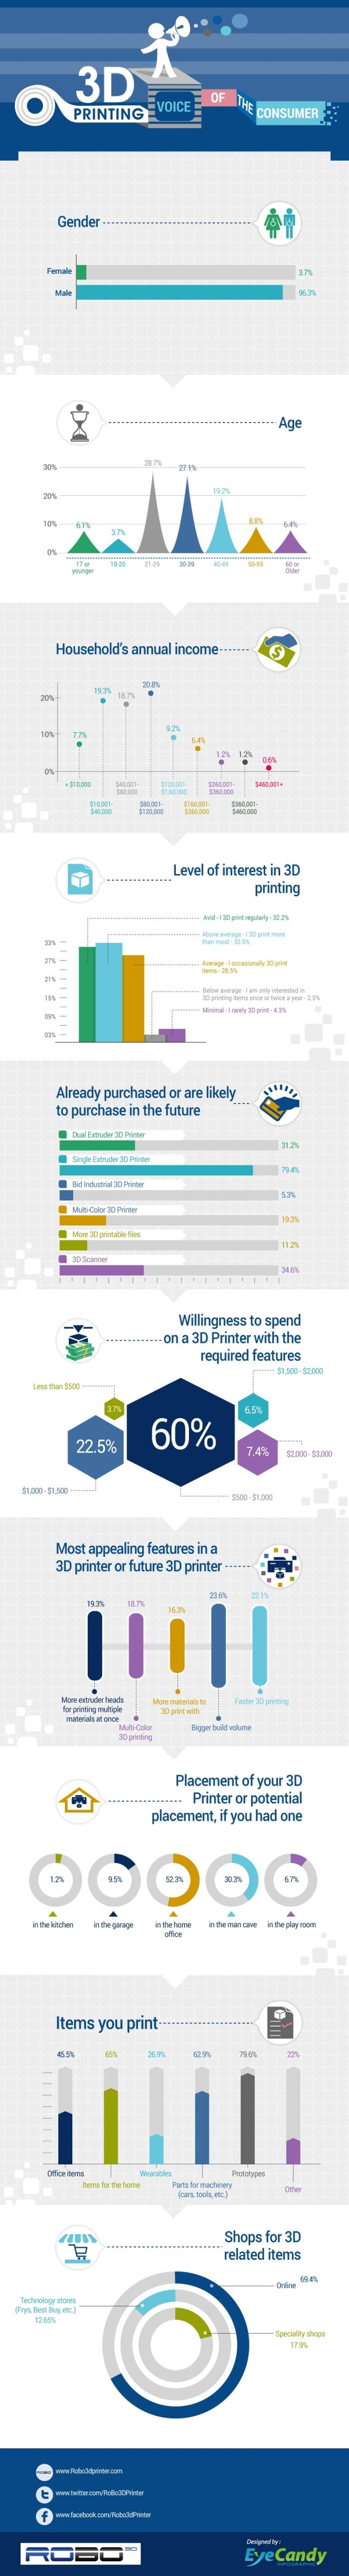 3ders.org - ROBO 3D announces results of the Big 3D Printing Consumer Survey | 3D Printer News & 3D Printing News